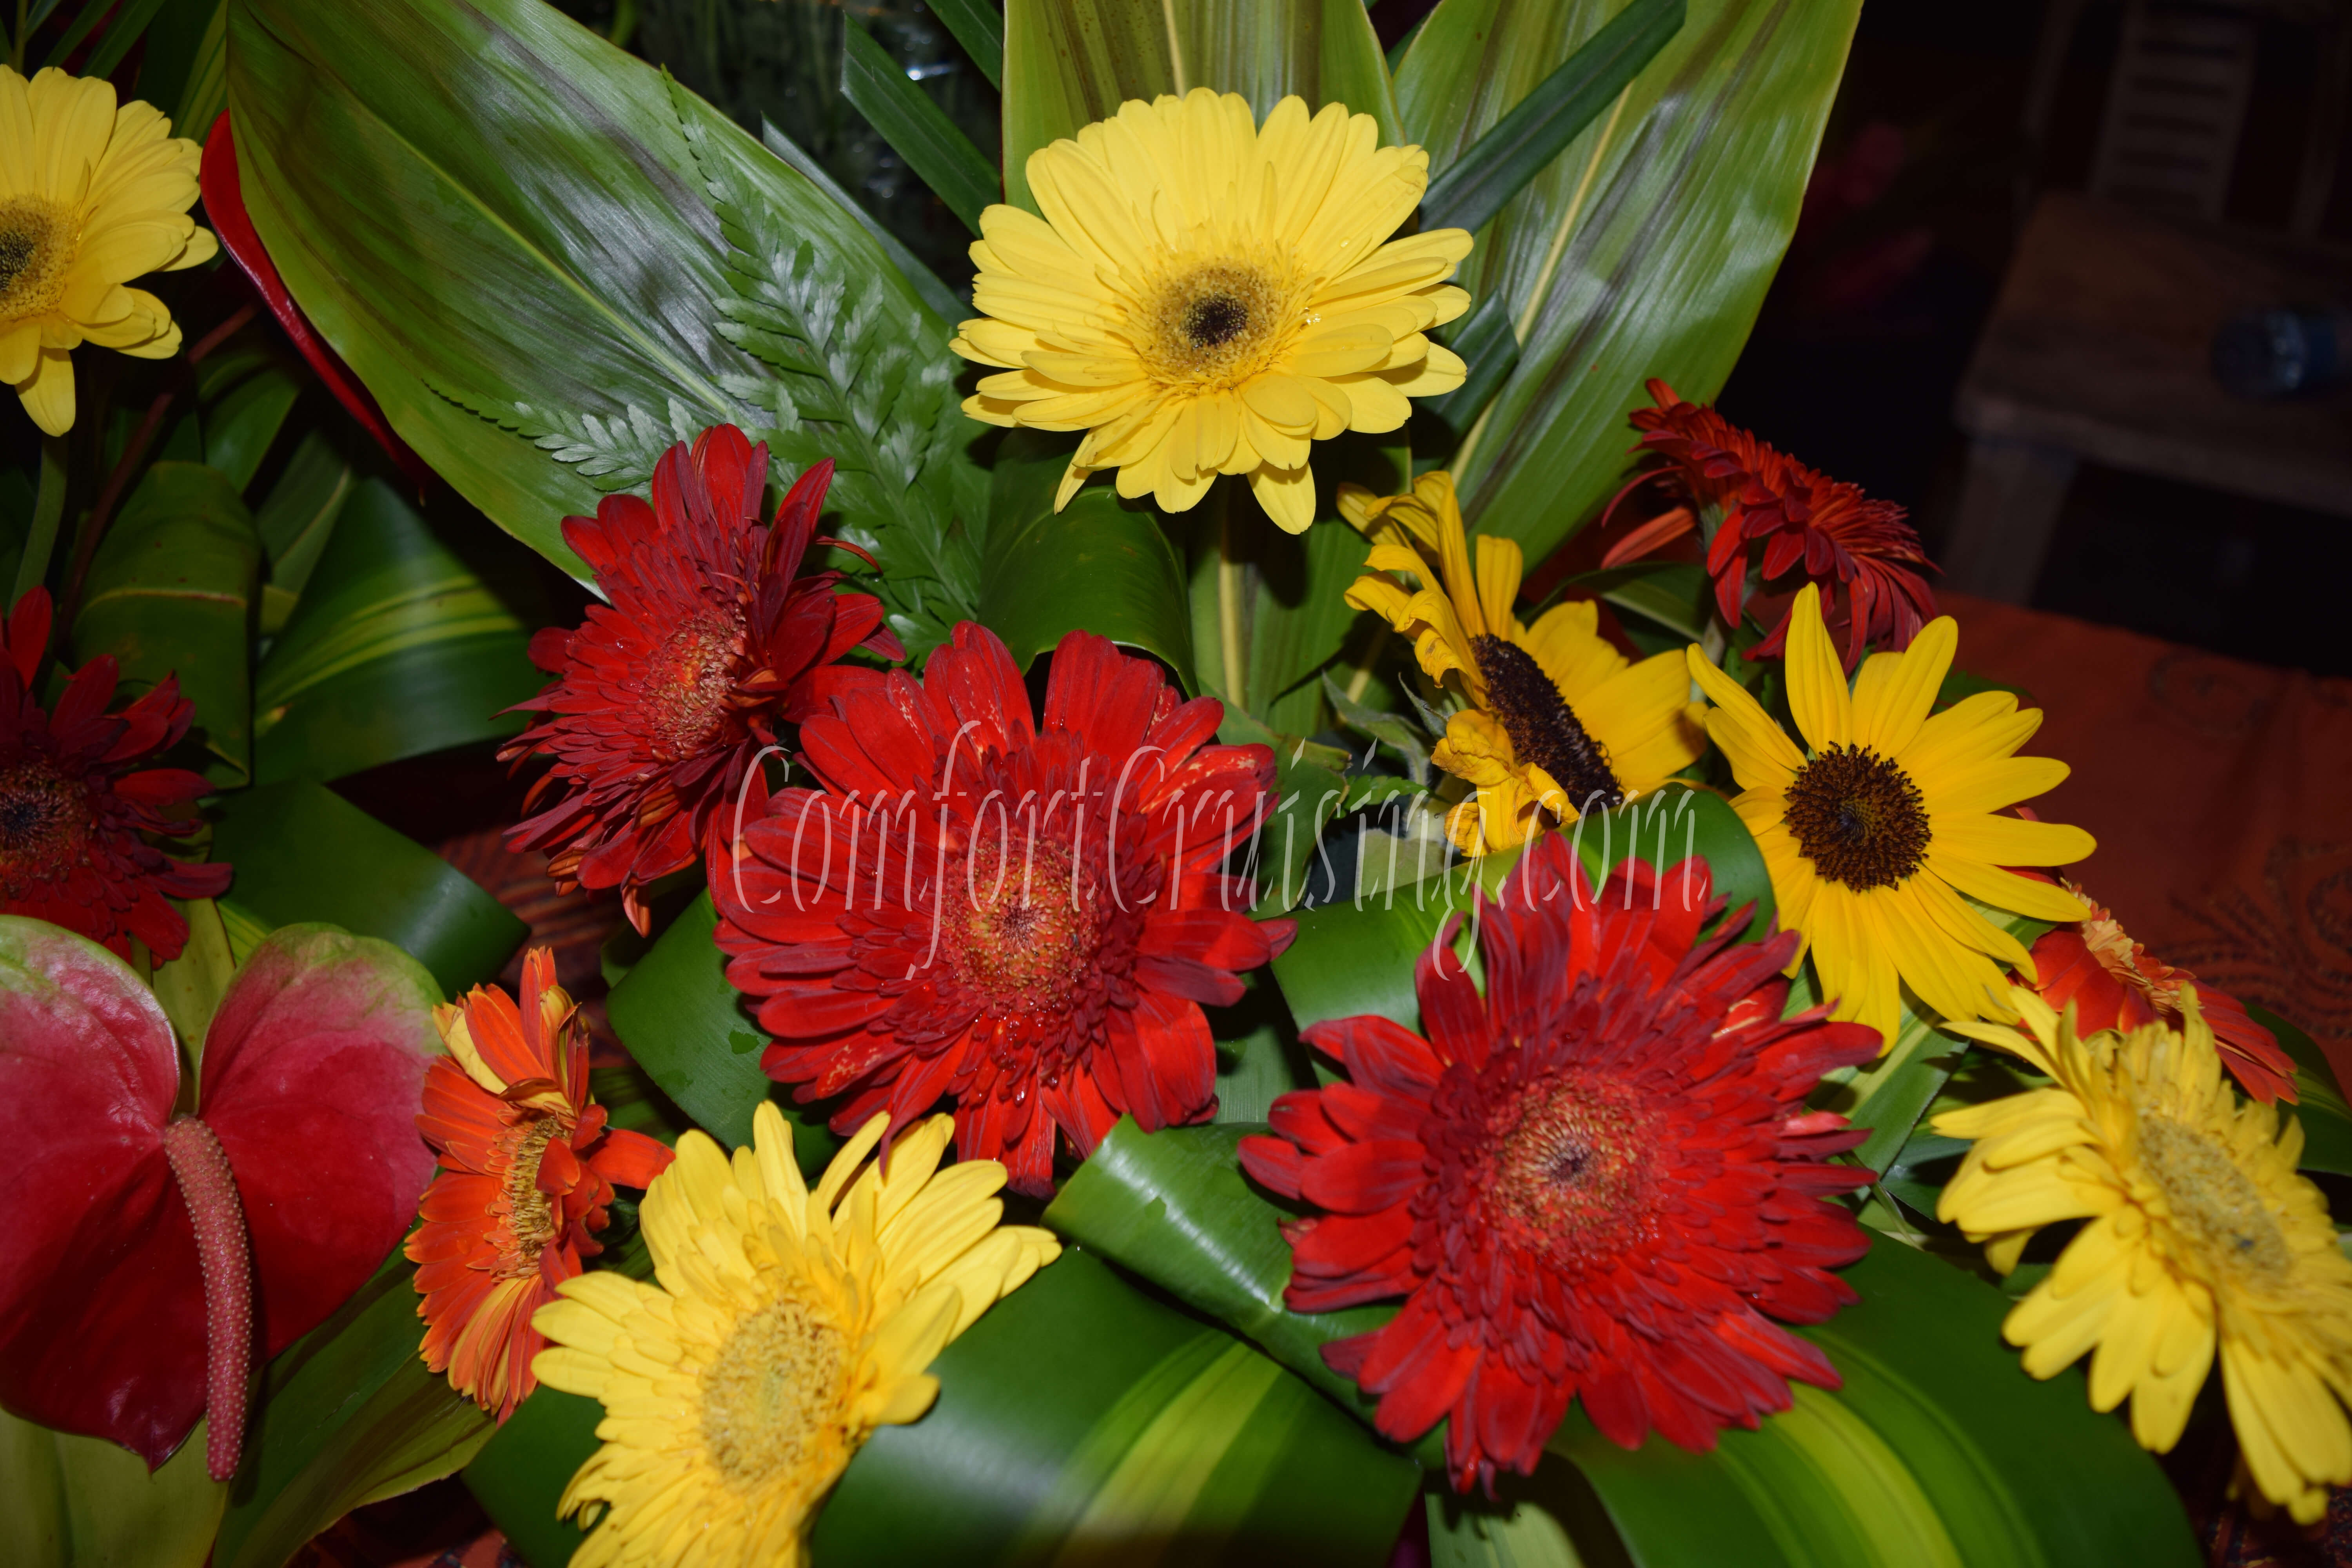 Yellow And Red Gerber Daisy Tropical Flower Arrangement For The Day